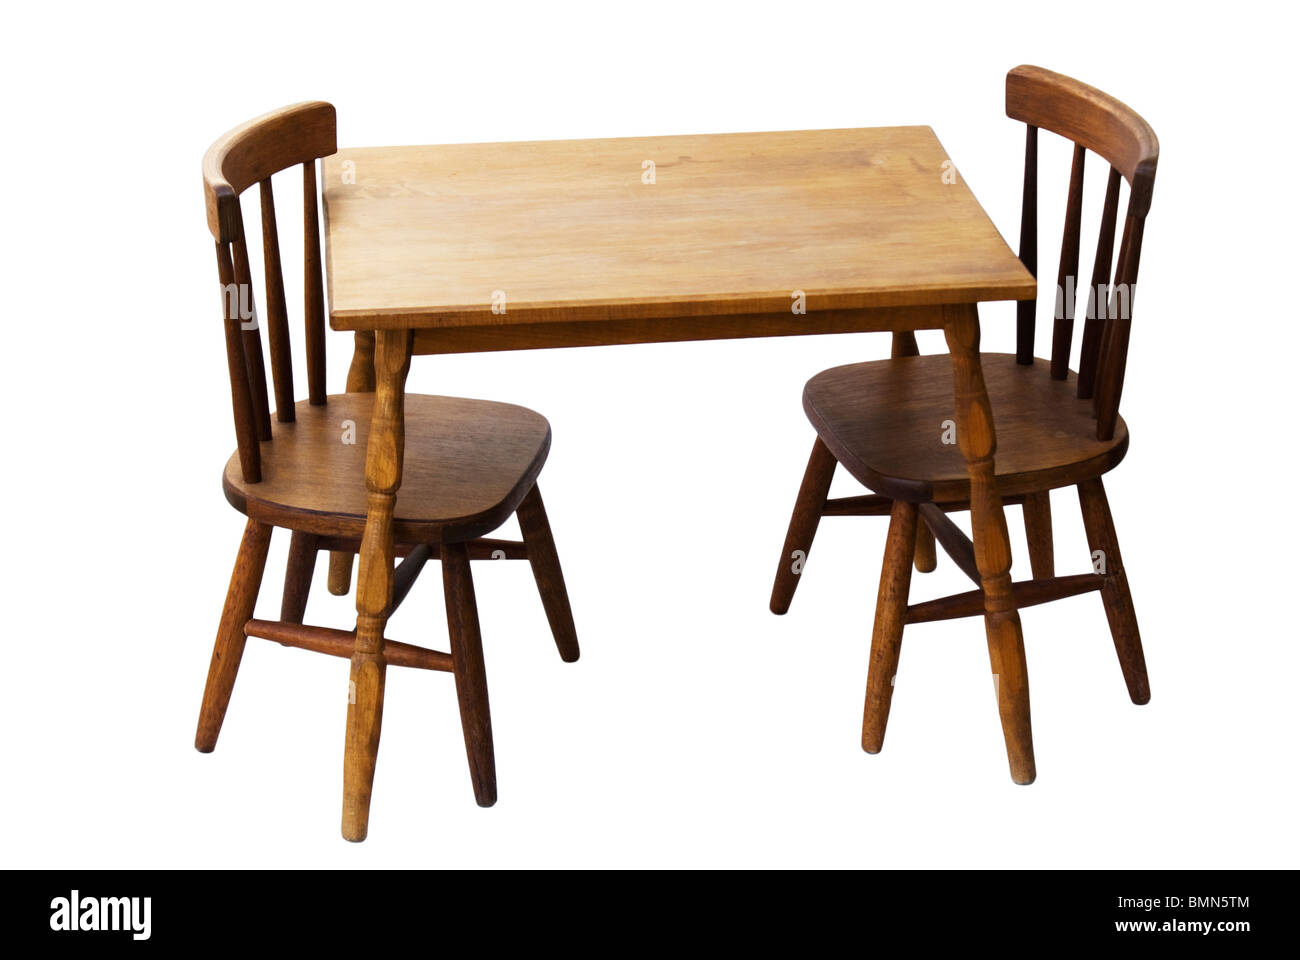 Childu0027s wood table and chair set with spindles. This is a vintage set for children.  sc 1 st  Alamy & Childu0027s wood table and chair set with spindles. This is a vintage ...